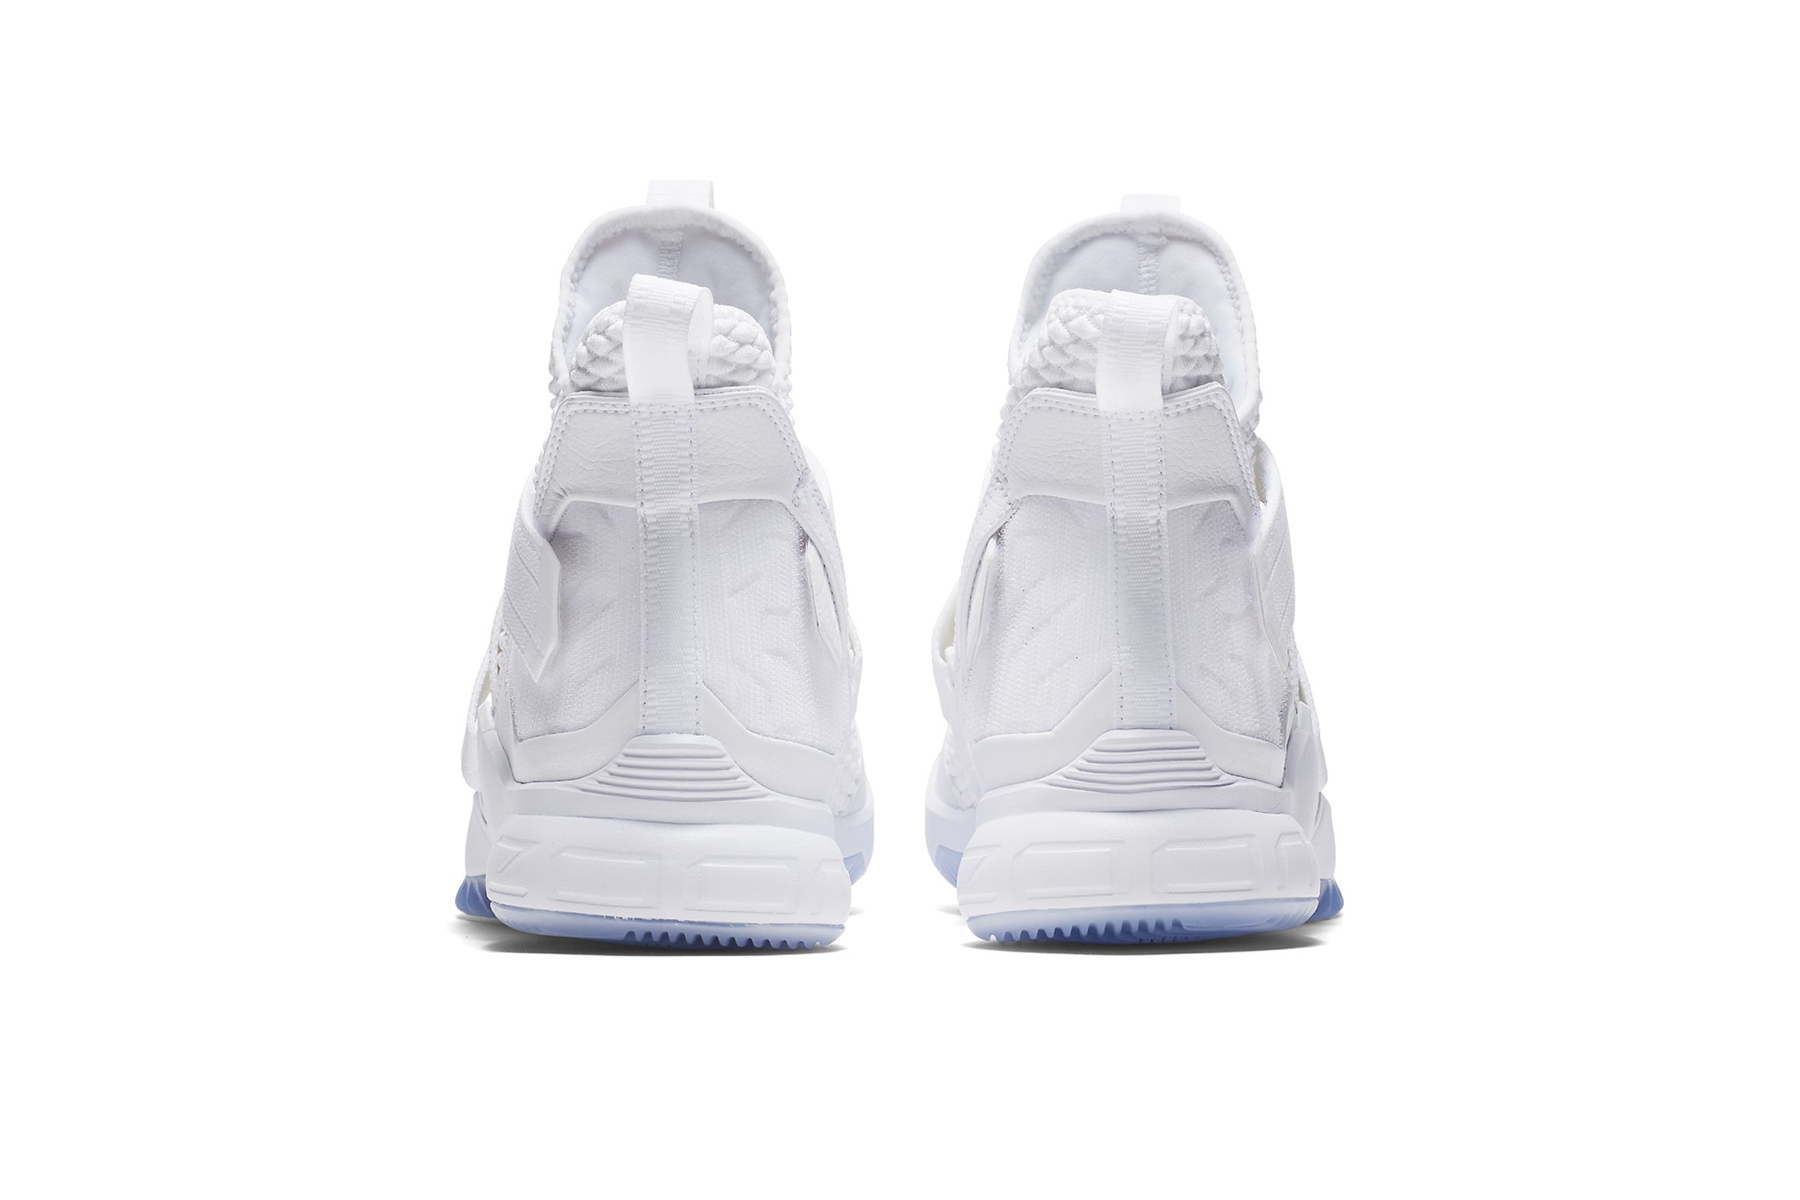 competitive price d1d94 1e5d8 Nike LeBron Soldier 12